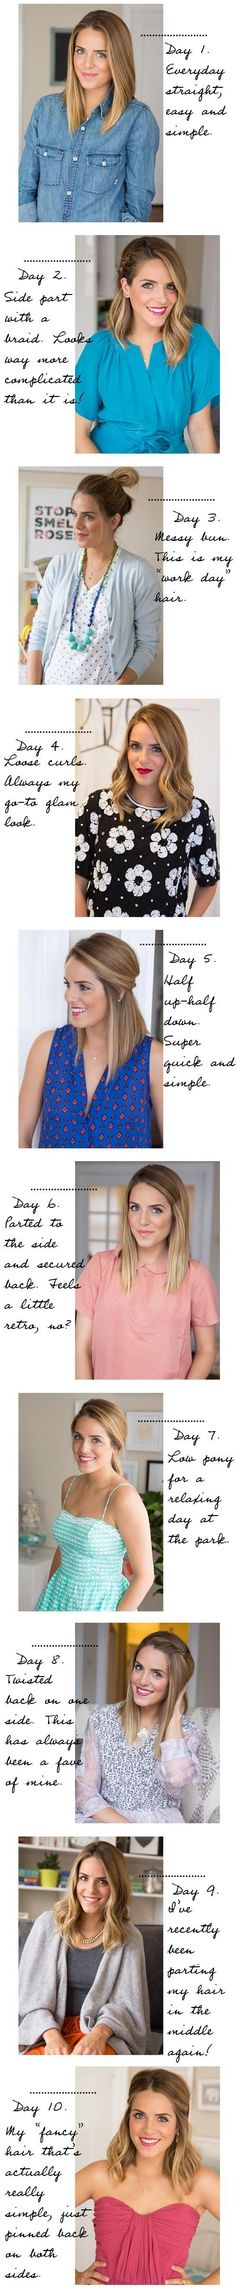 Shoulder Length Hair Styles (for my new do)